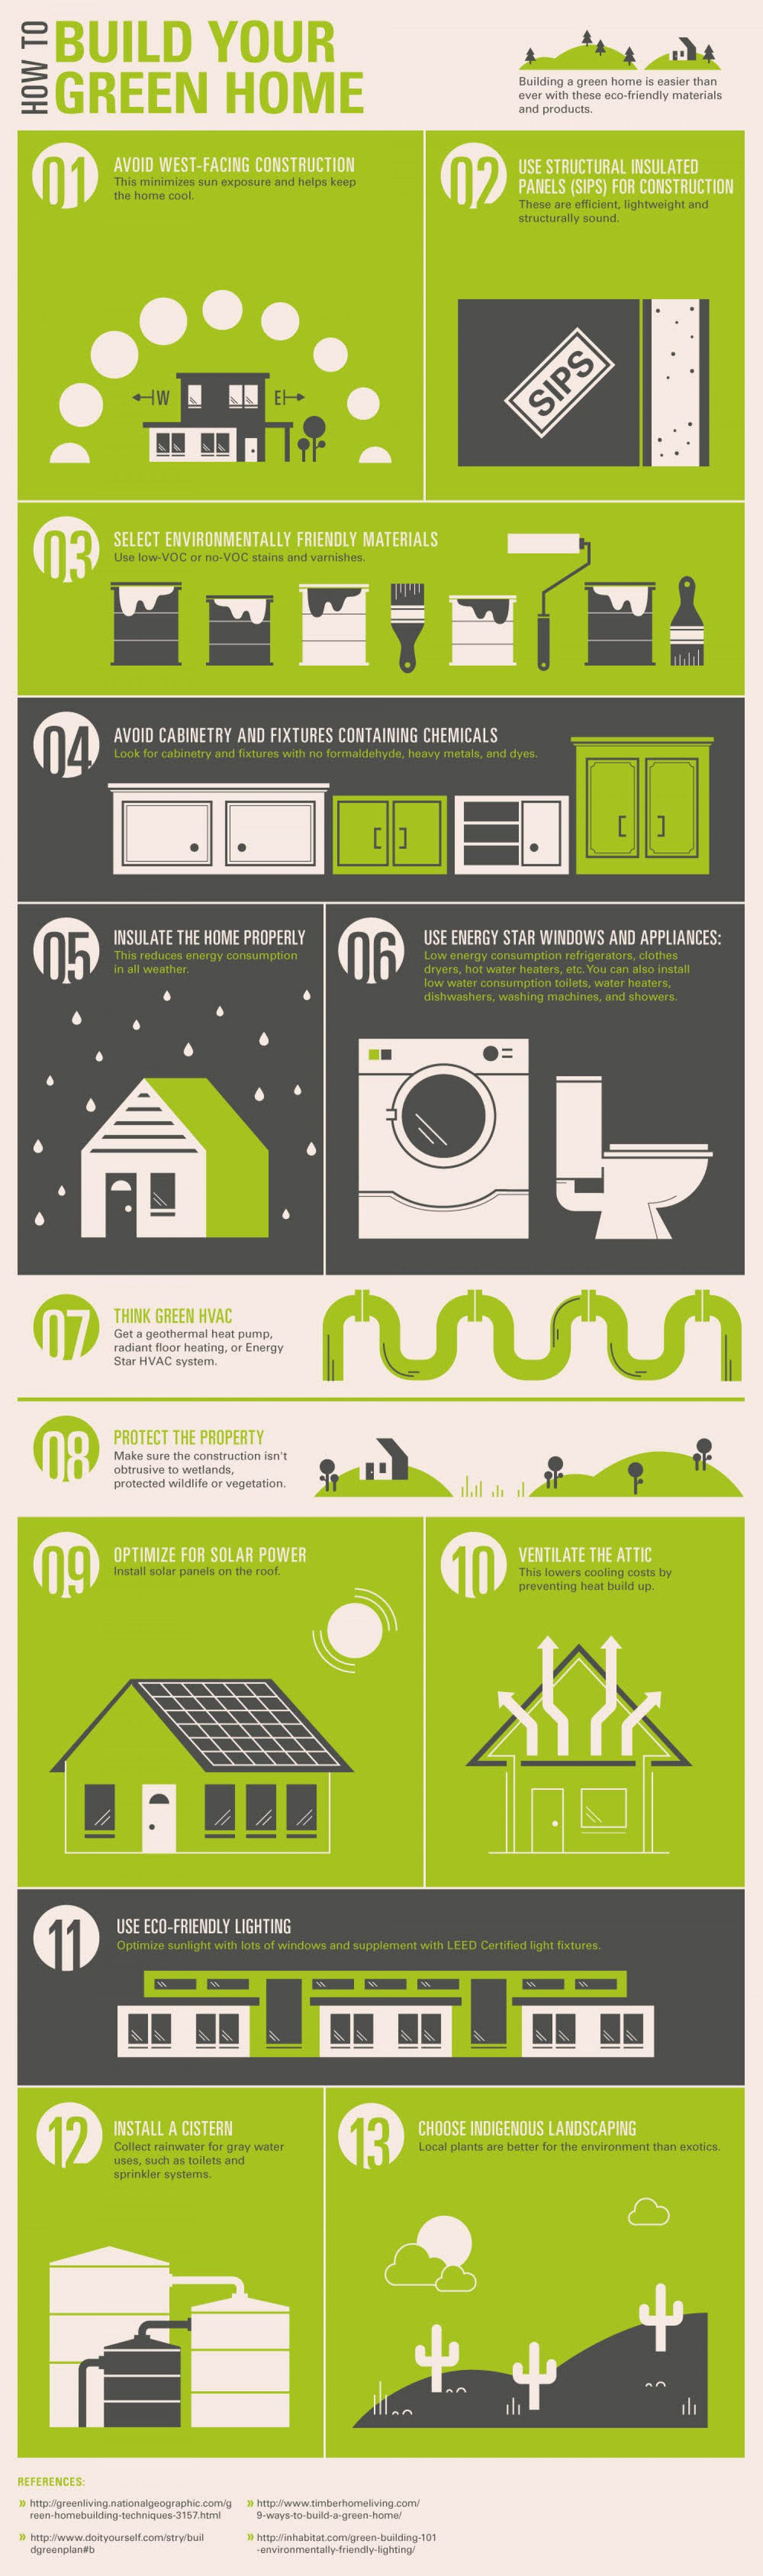 how to build your green home infographic